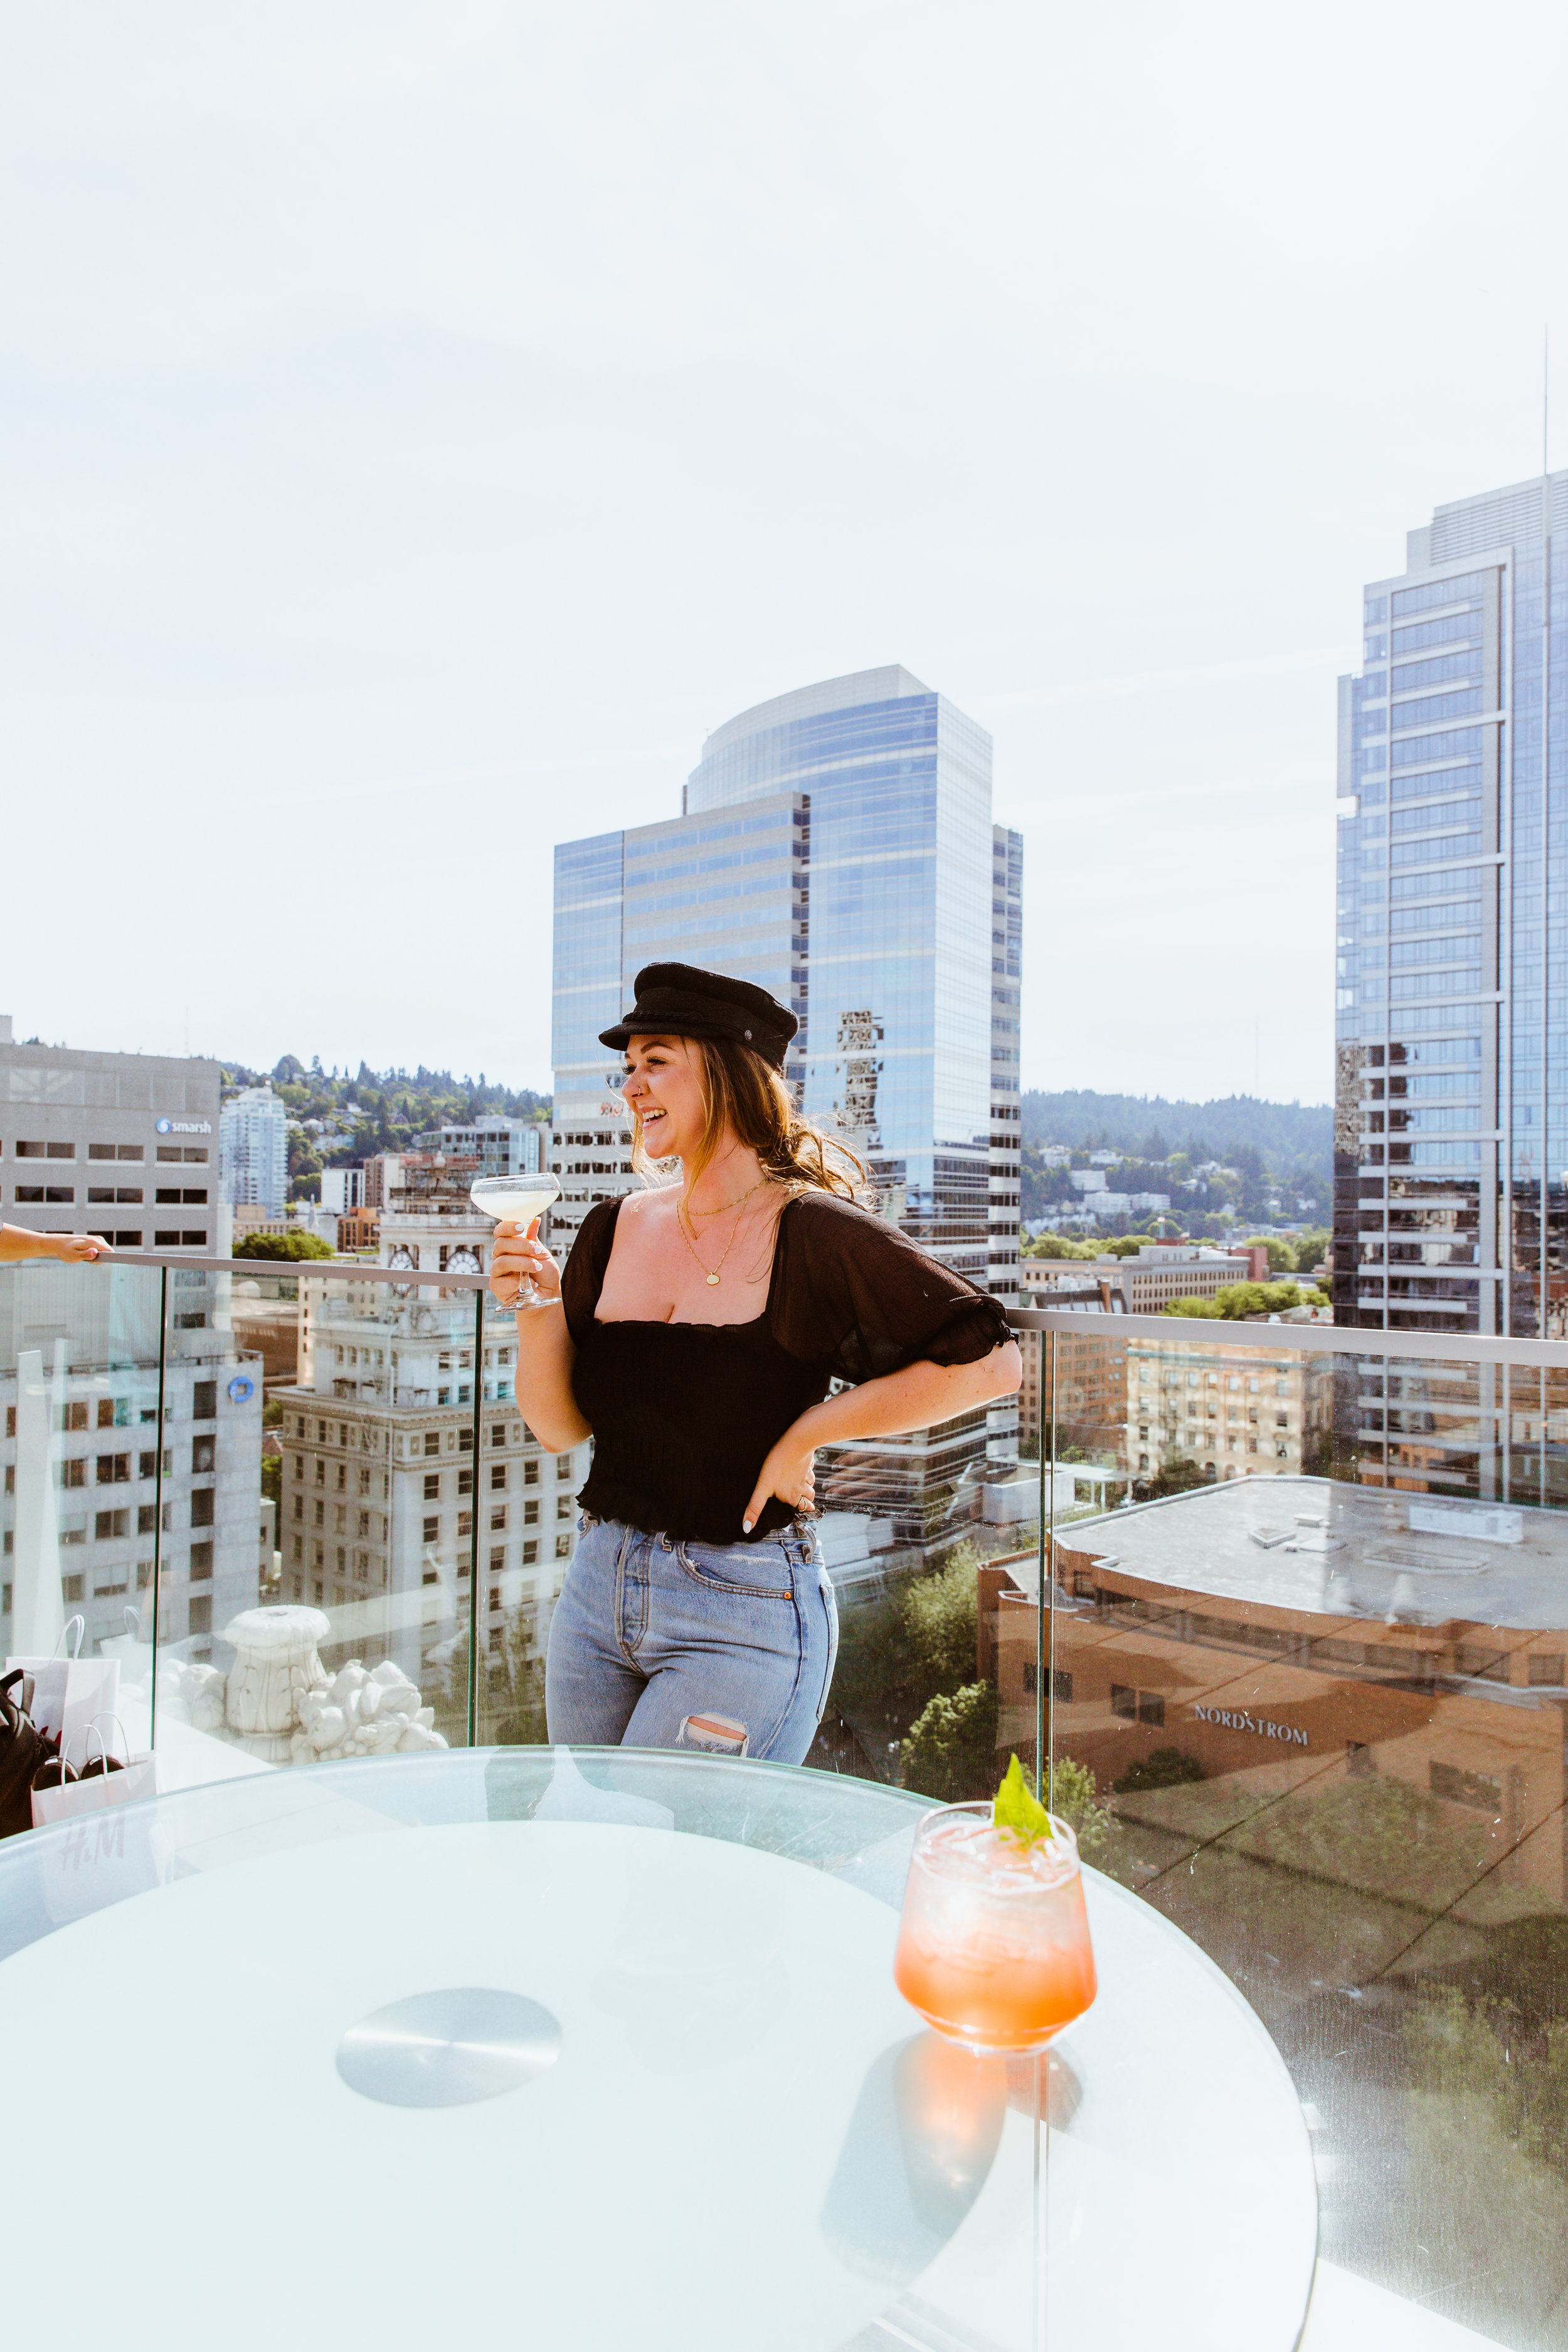 """""""Mocktails"""" With a View - Departure Restaurant and LoungeSW Morrison St. 15th Floor Portland, OR"""